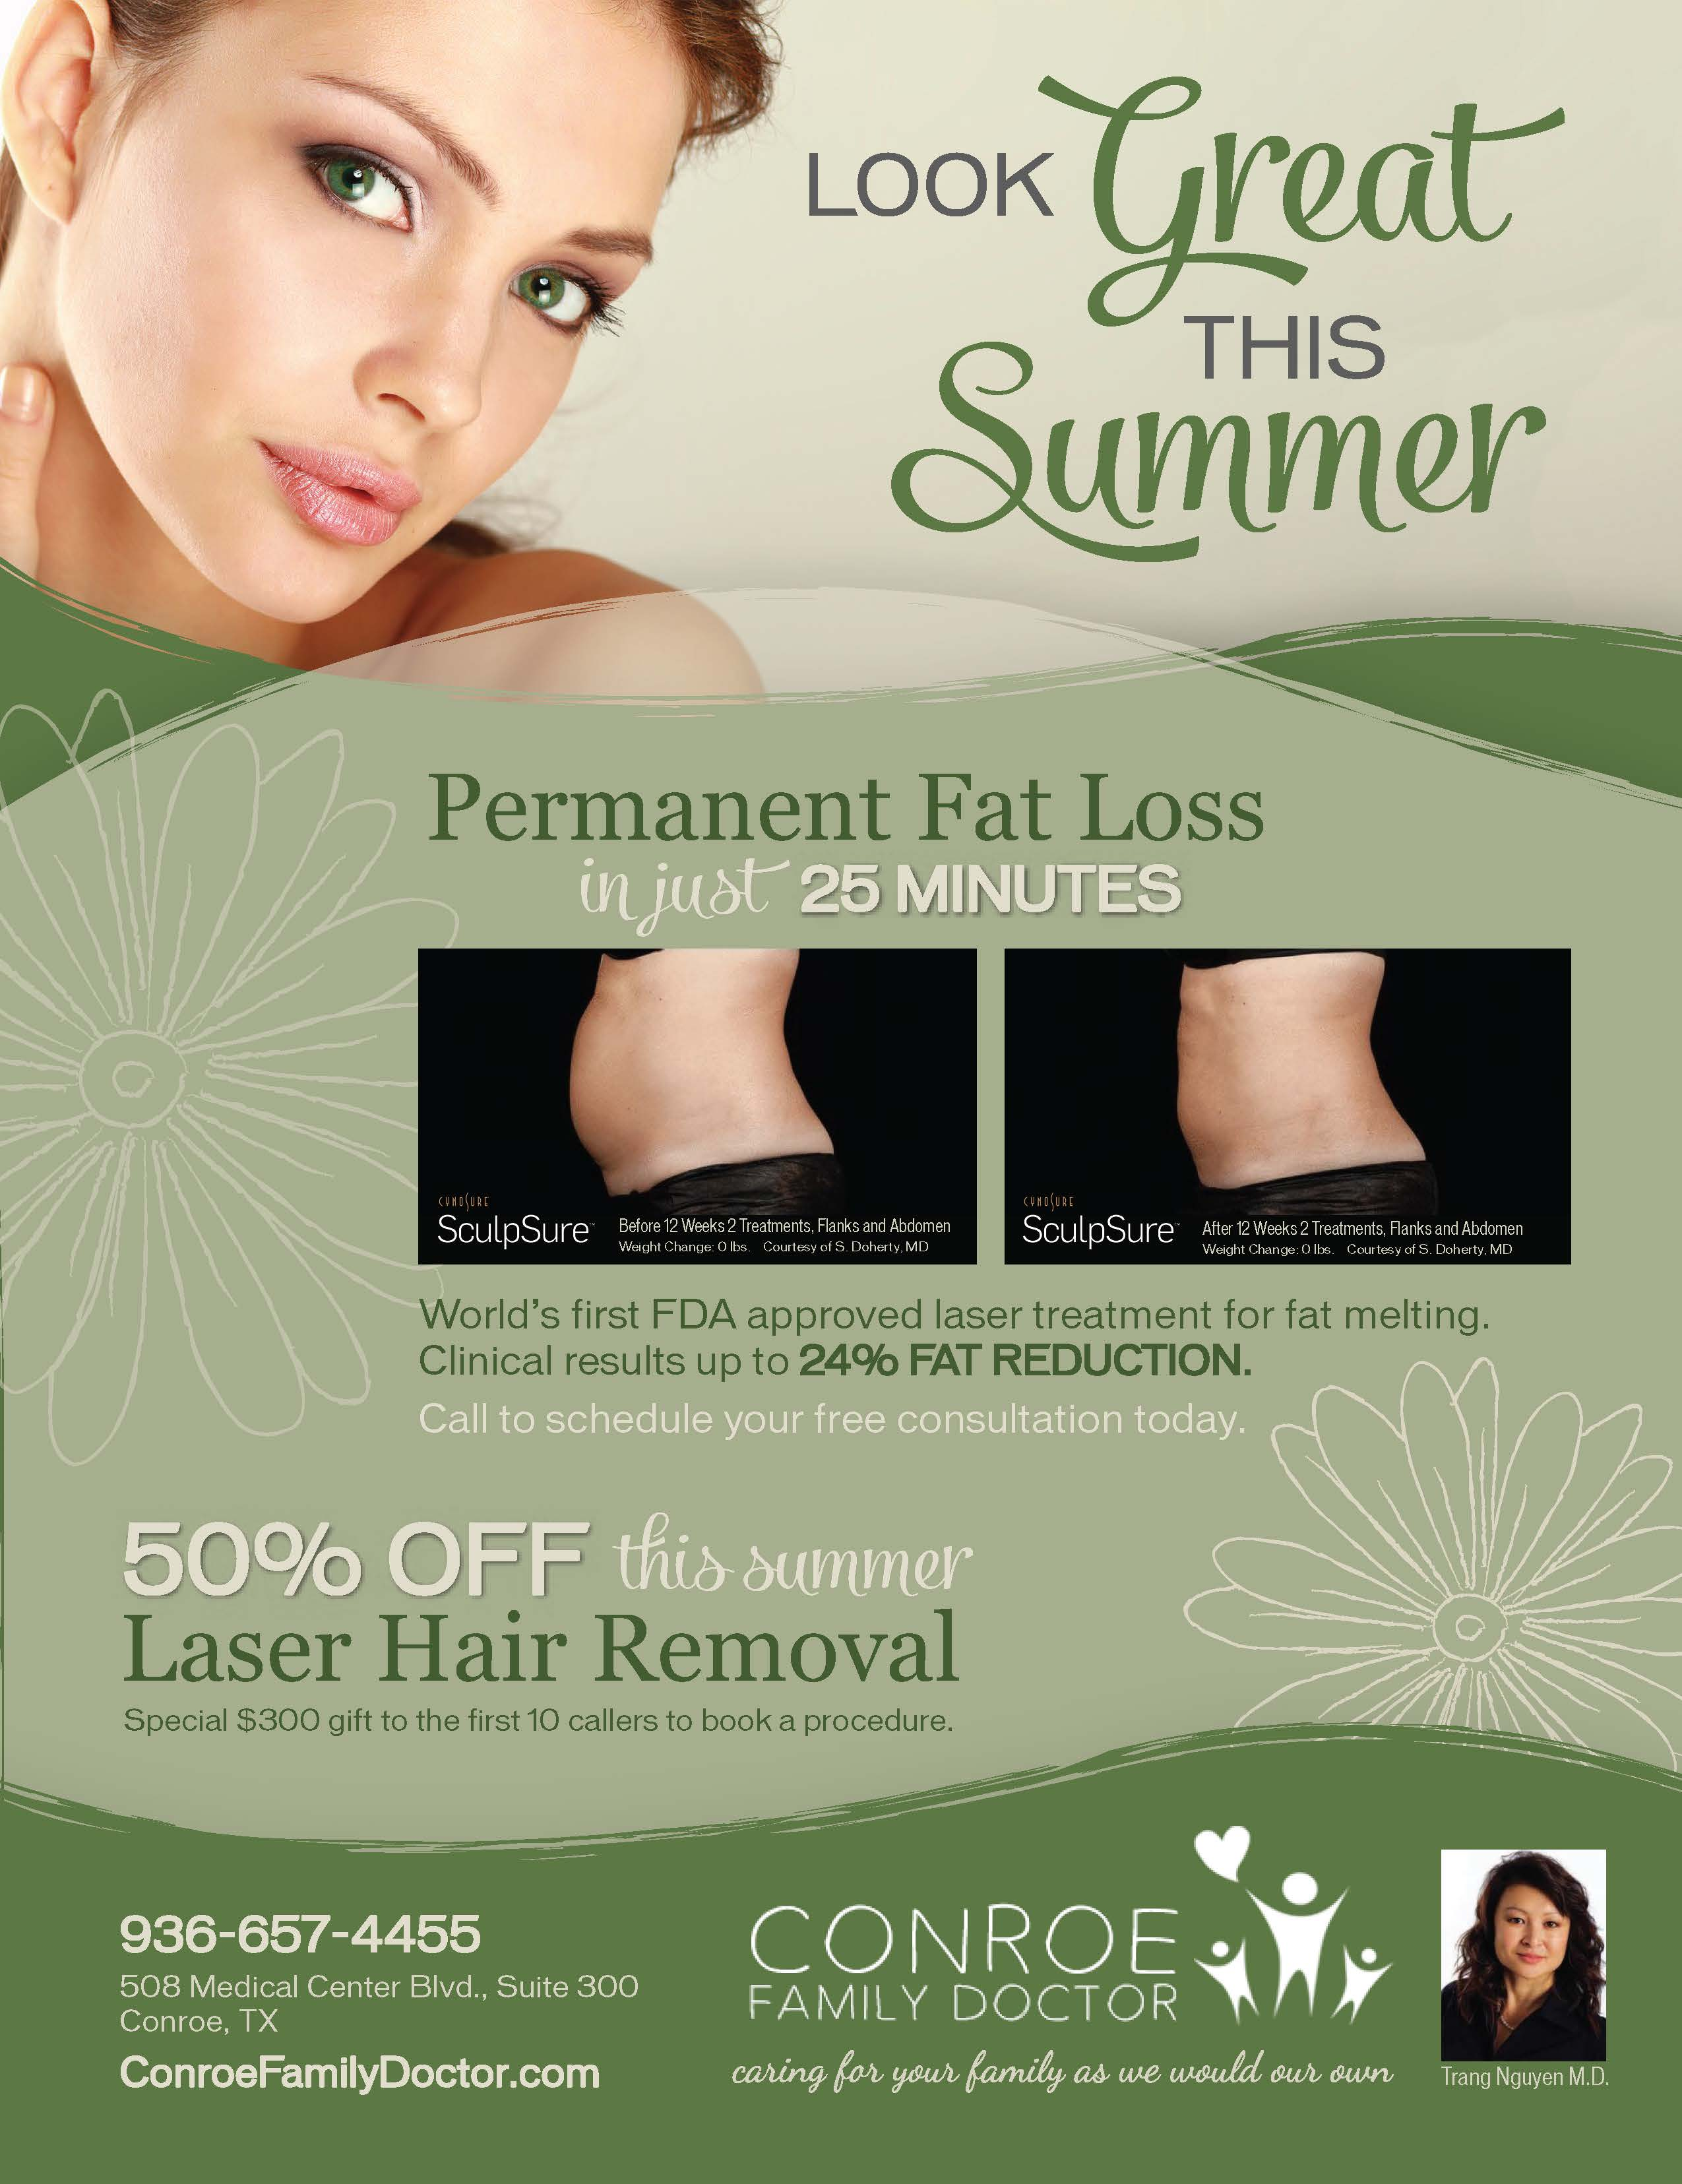 Conroe Family Doctor Look Great This Summer Blog2